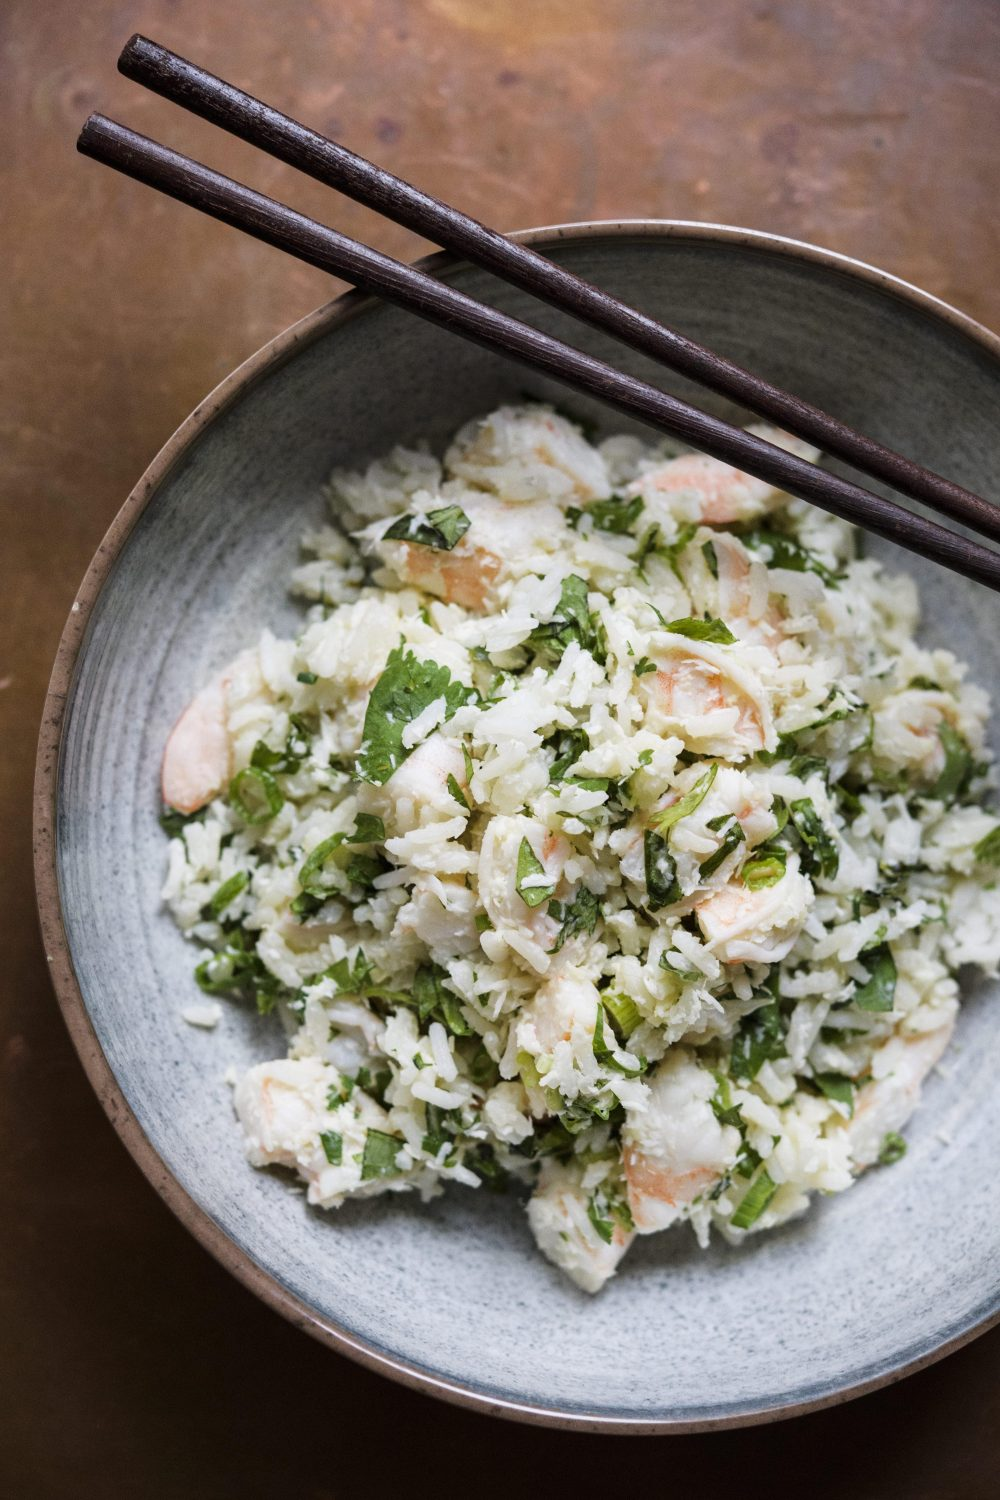 Jasmine Rice and Herb Salad with Shrimp